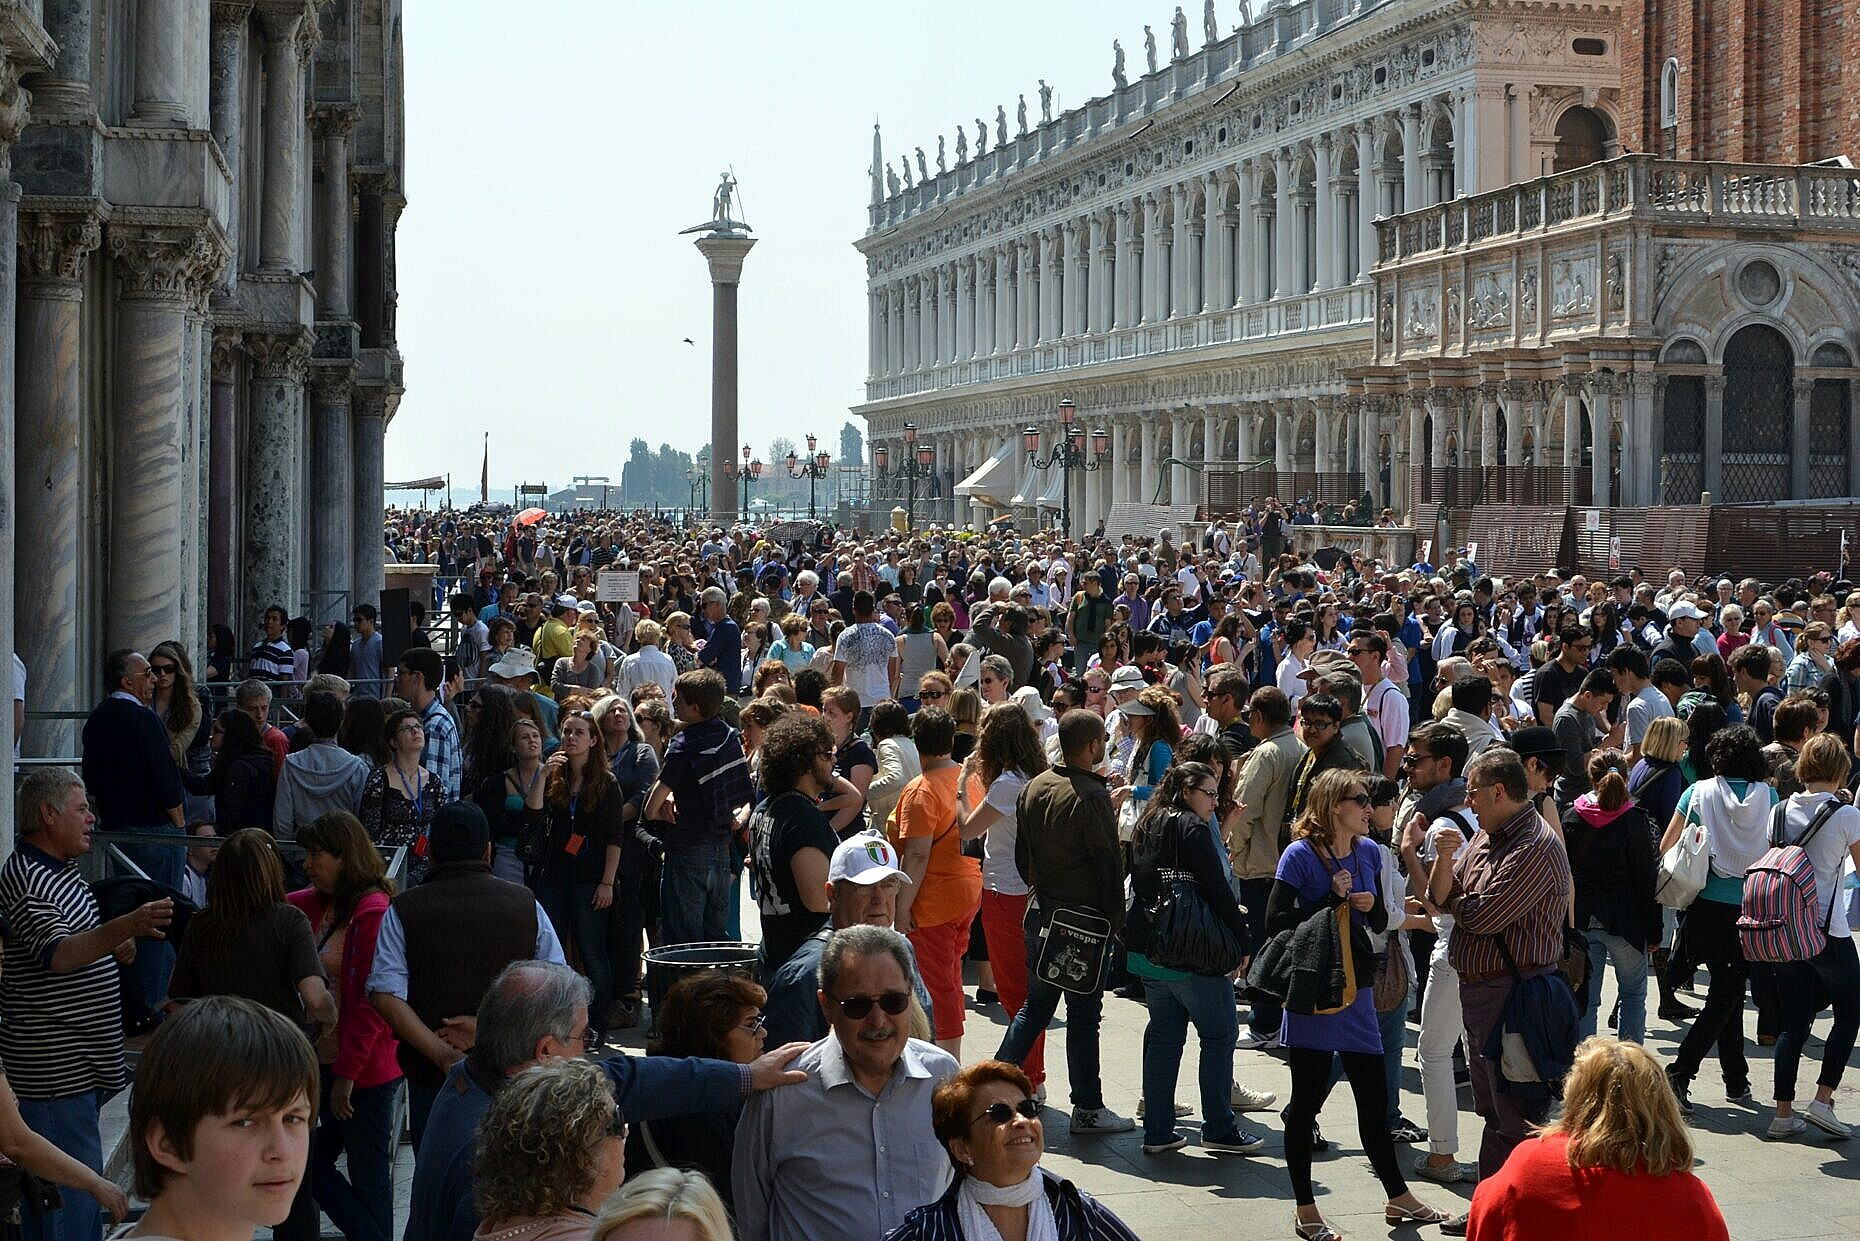 Why I normally avoid Piazza San Marco if I can in any way